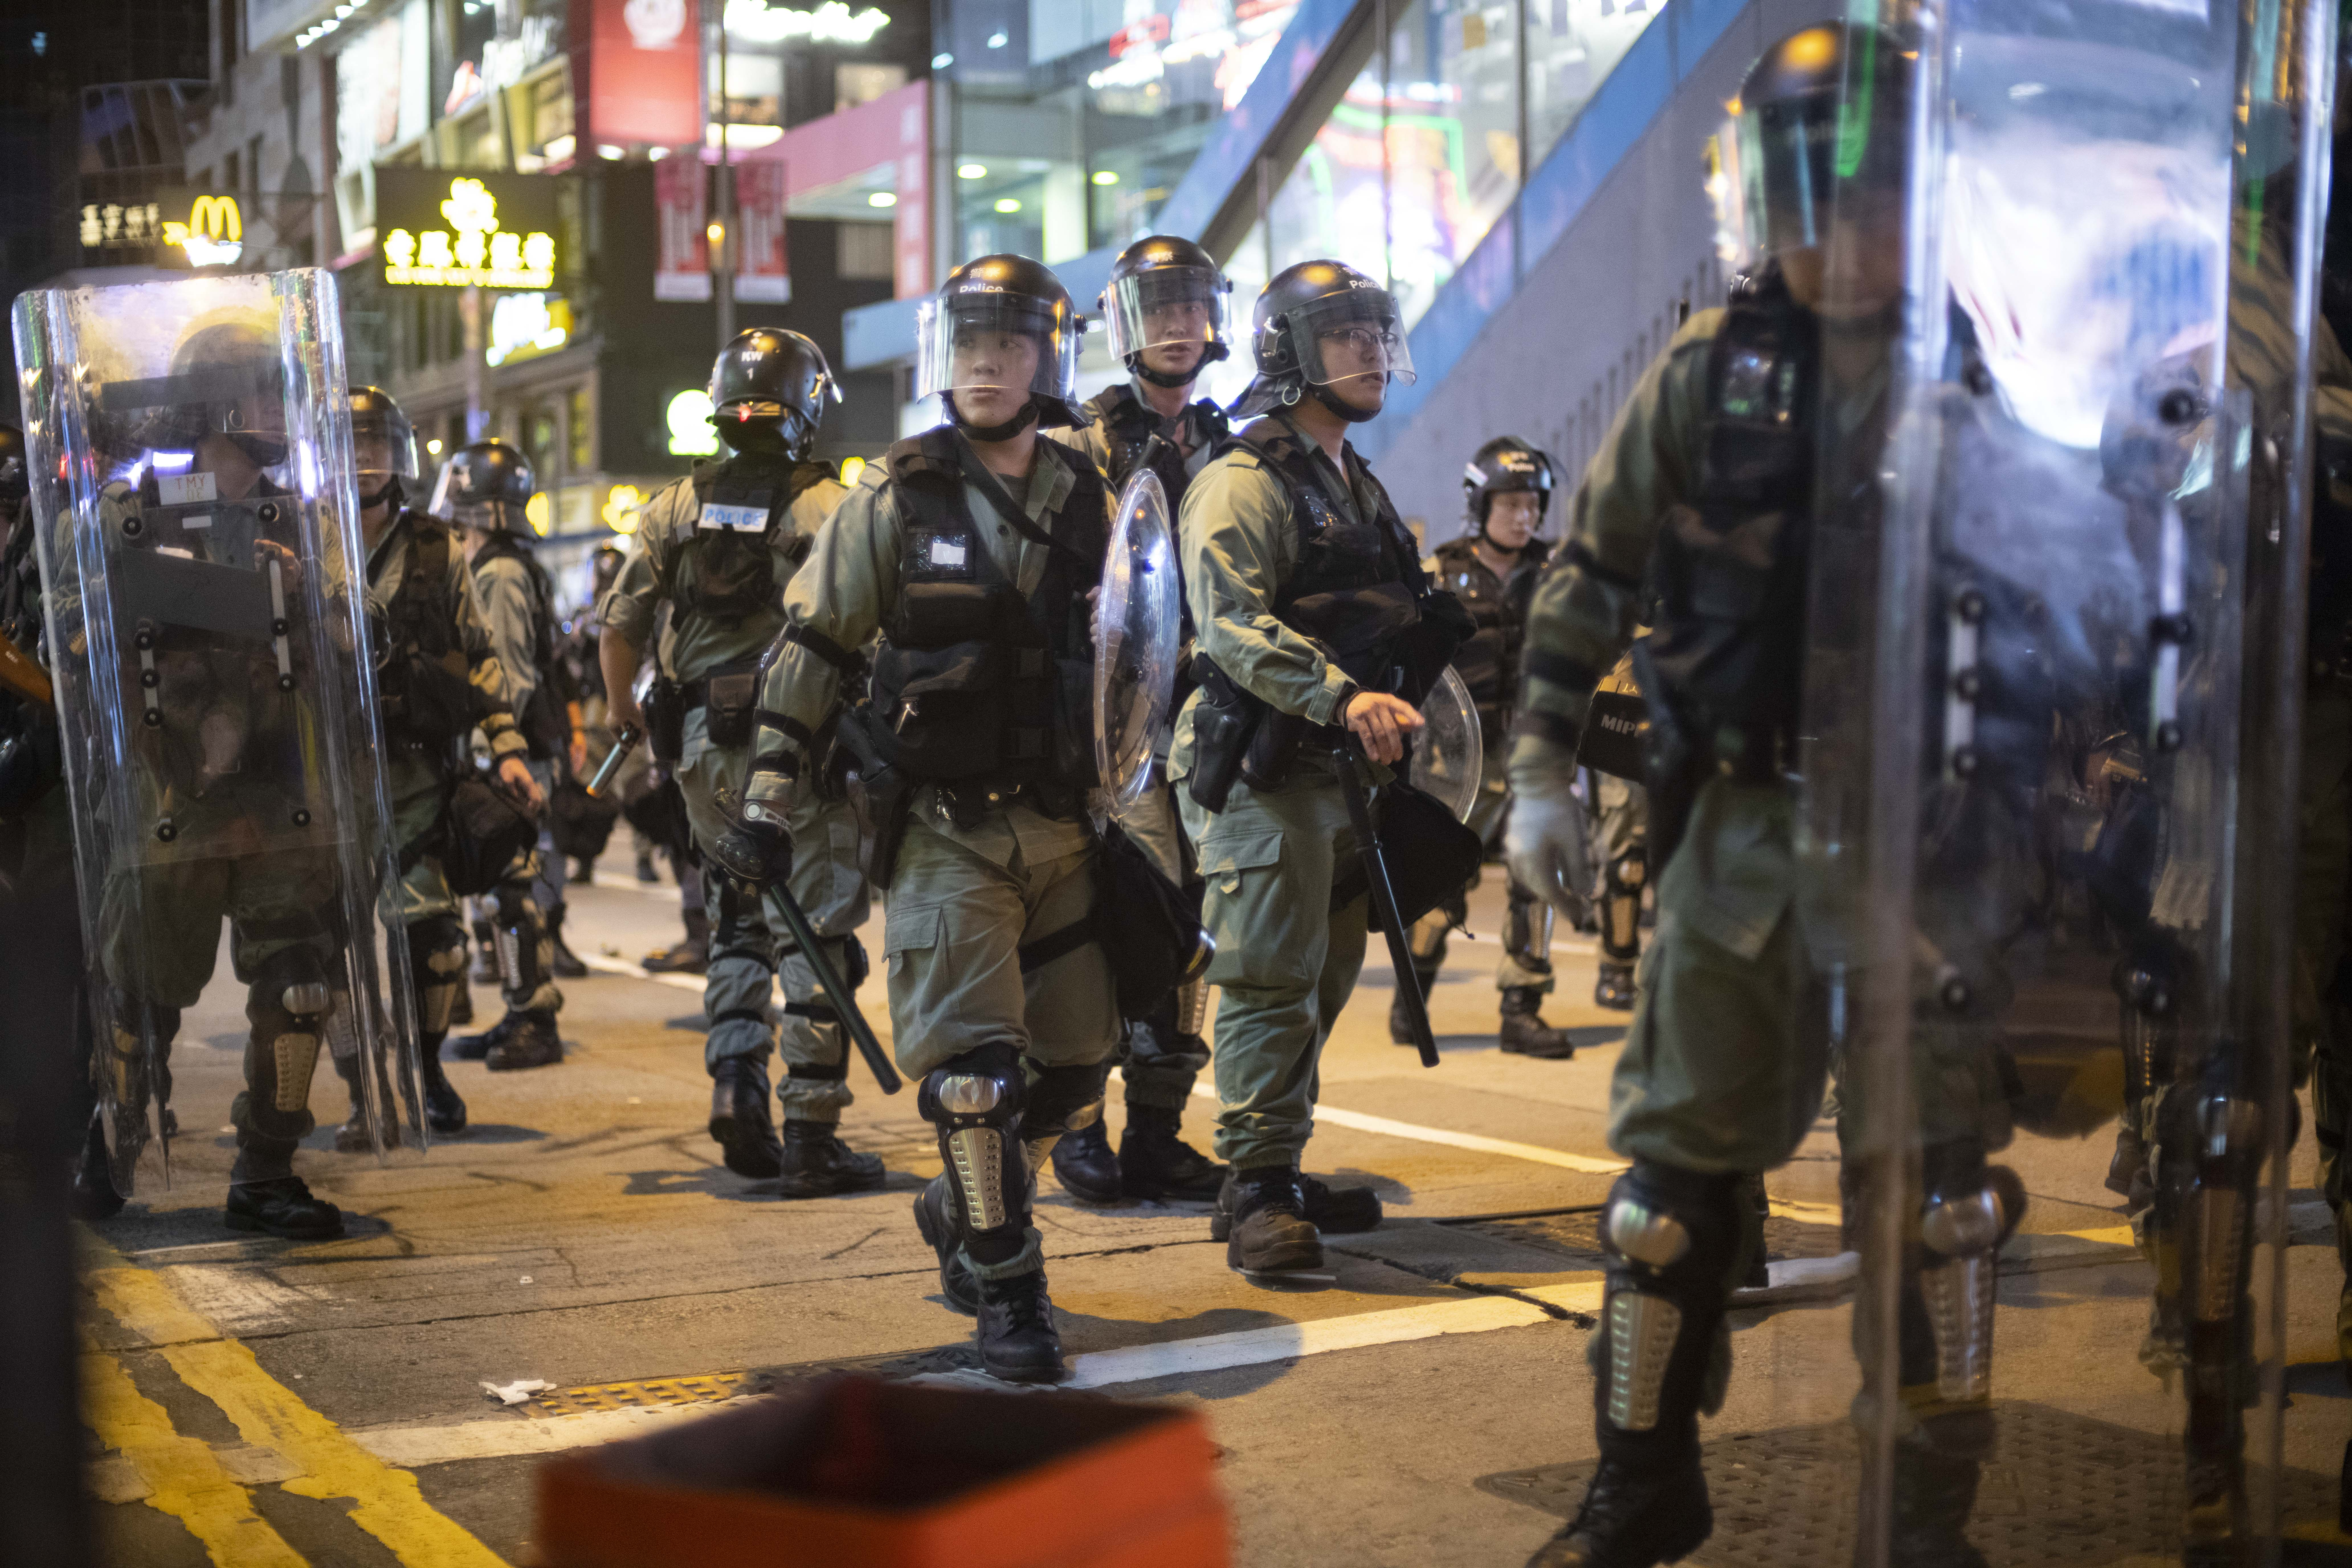 Riot police seen in Causeway Bay Sunday night.